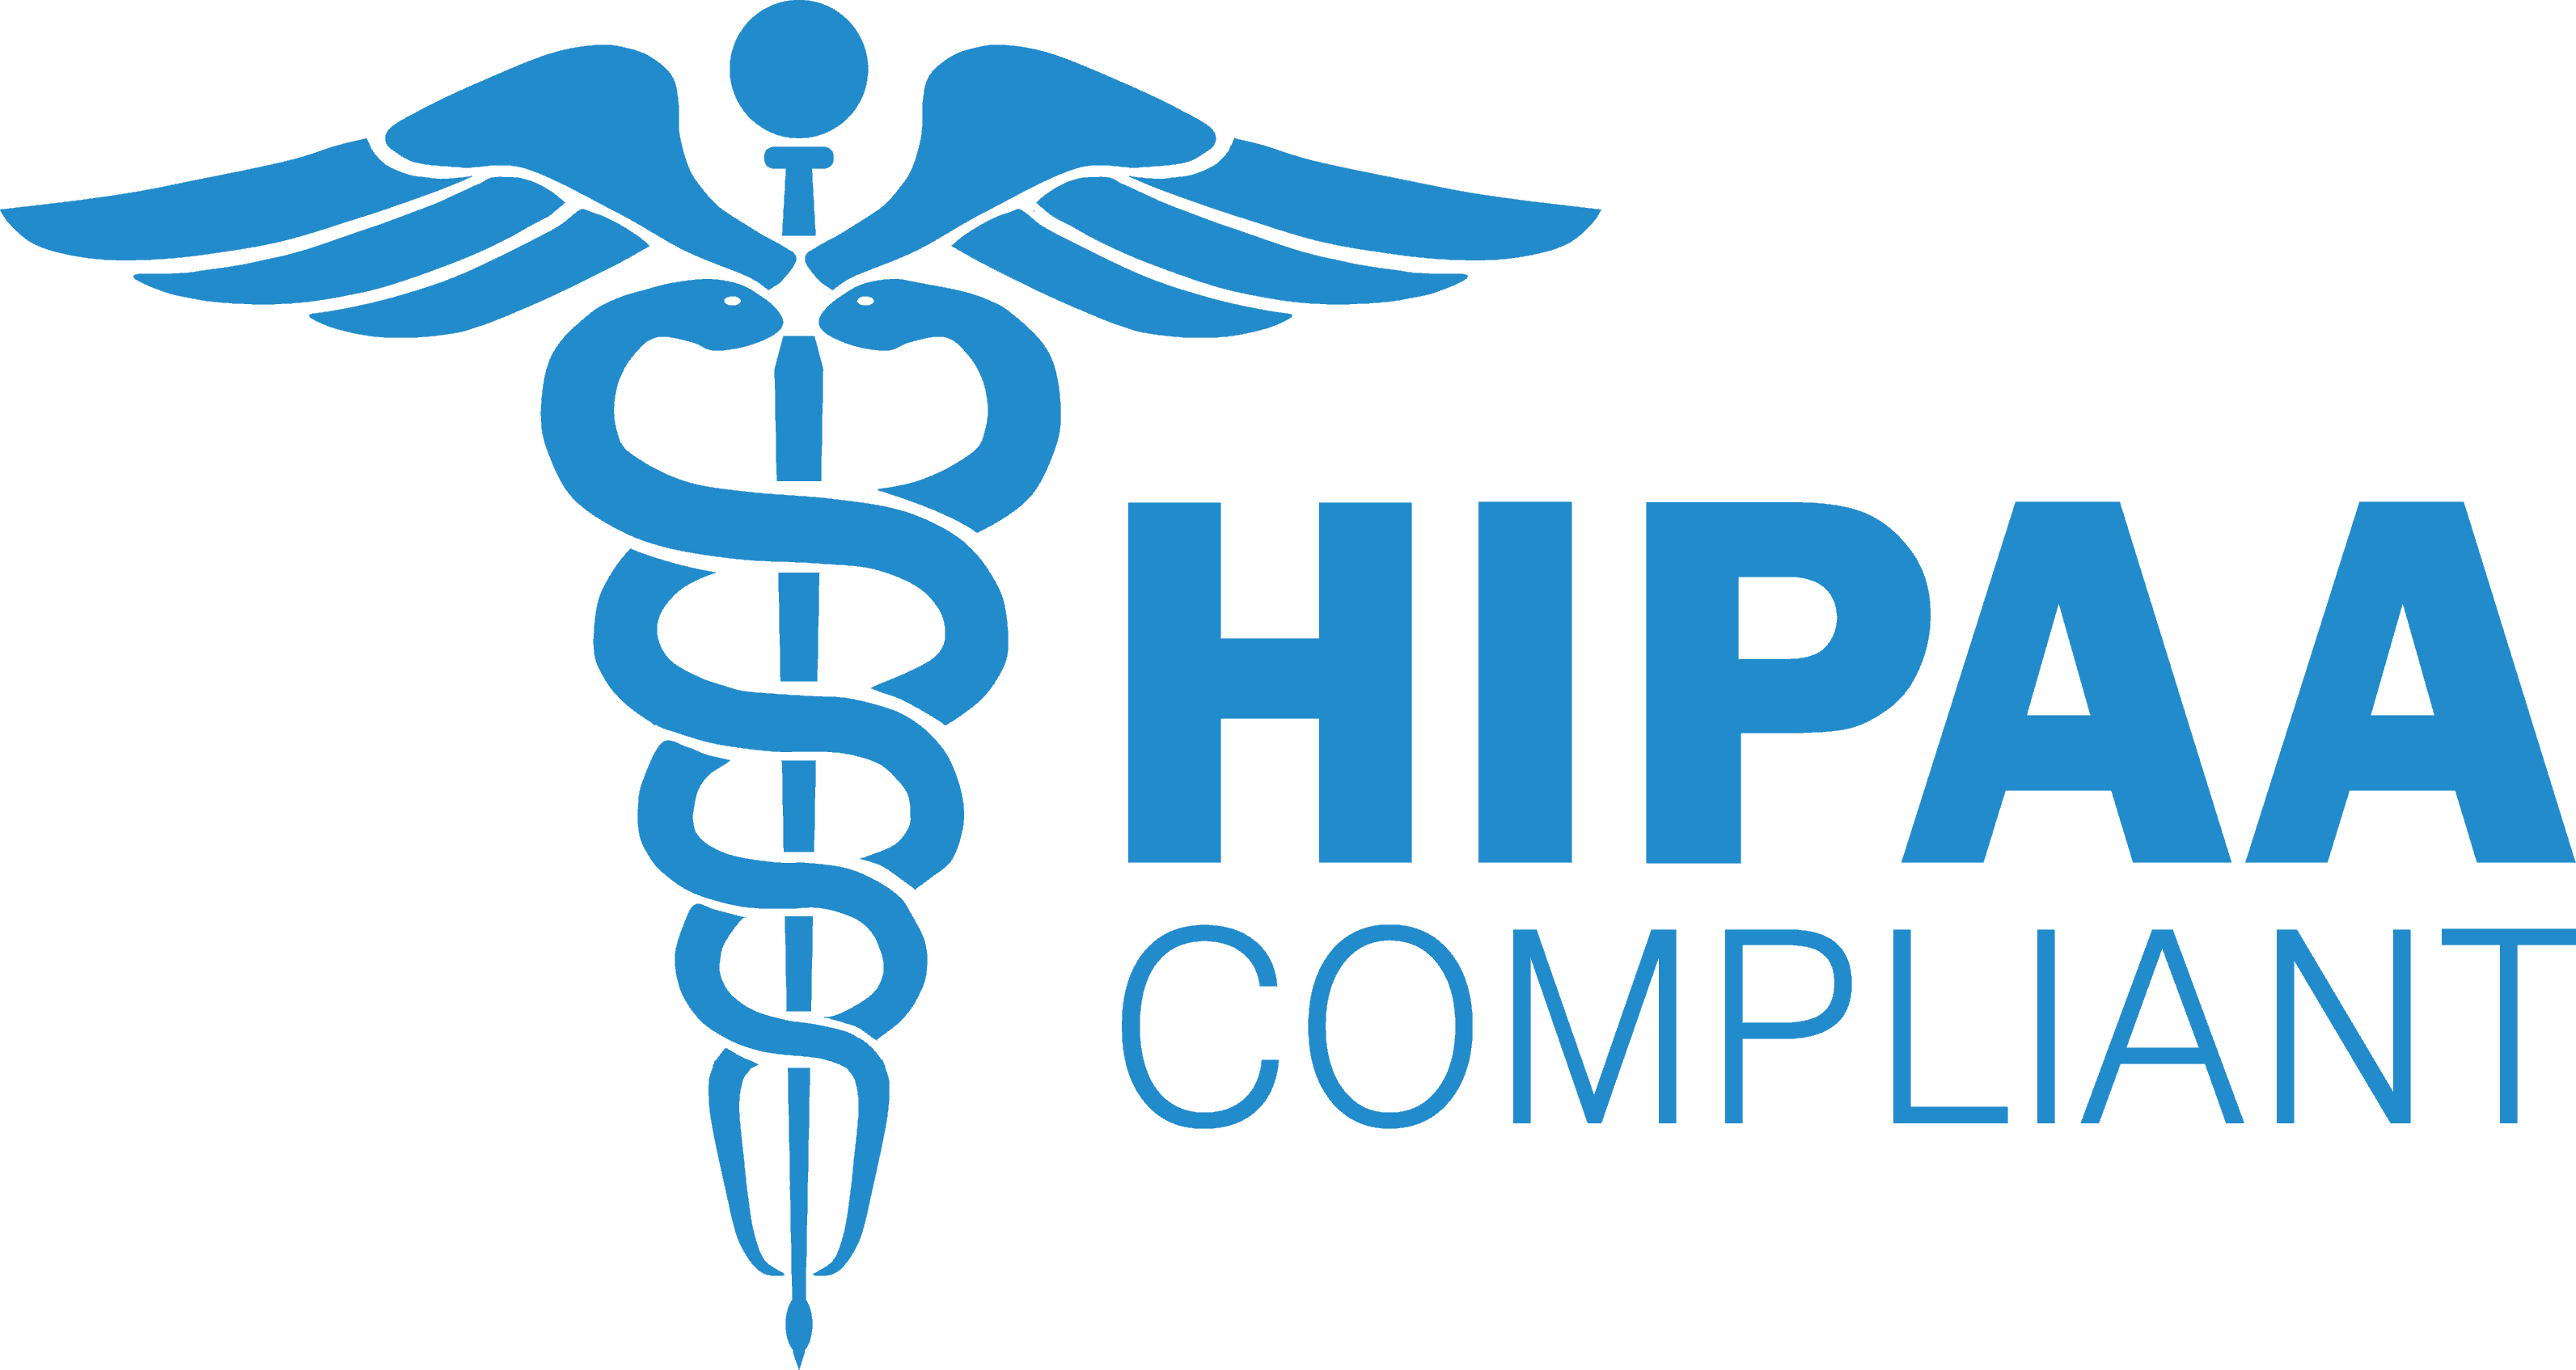 hipaa compliant speech analytics vendor